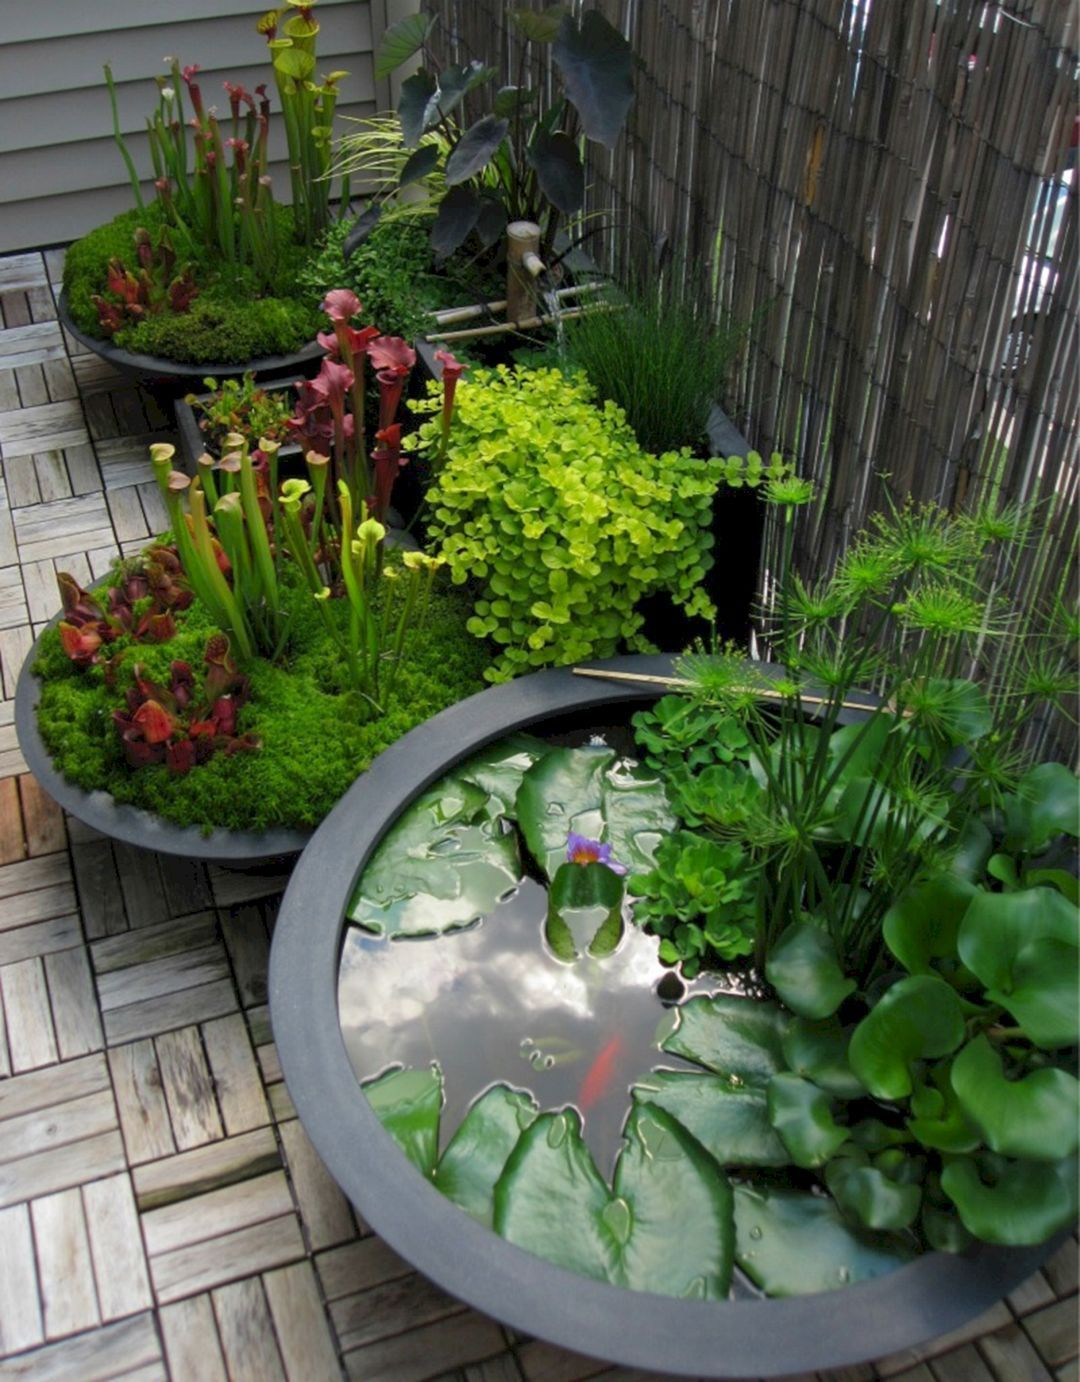 76 Beautiful Zen Garden Ideas For Backyard 660 | Casa. Ideas ... on interior herb garden, interior japanese garden, interior feng shui garden, interior design garden, interior modern garden, interior chinese garden, interior water garden, interior rock garden, interior urban garden, interior botanical garden,